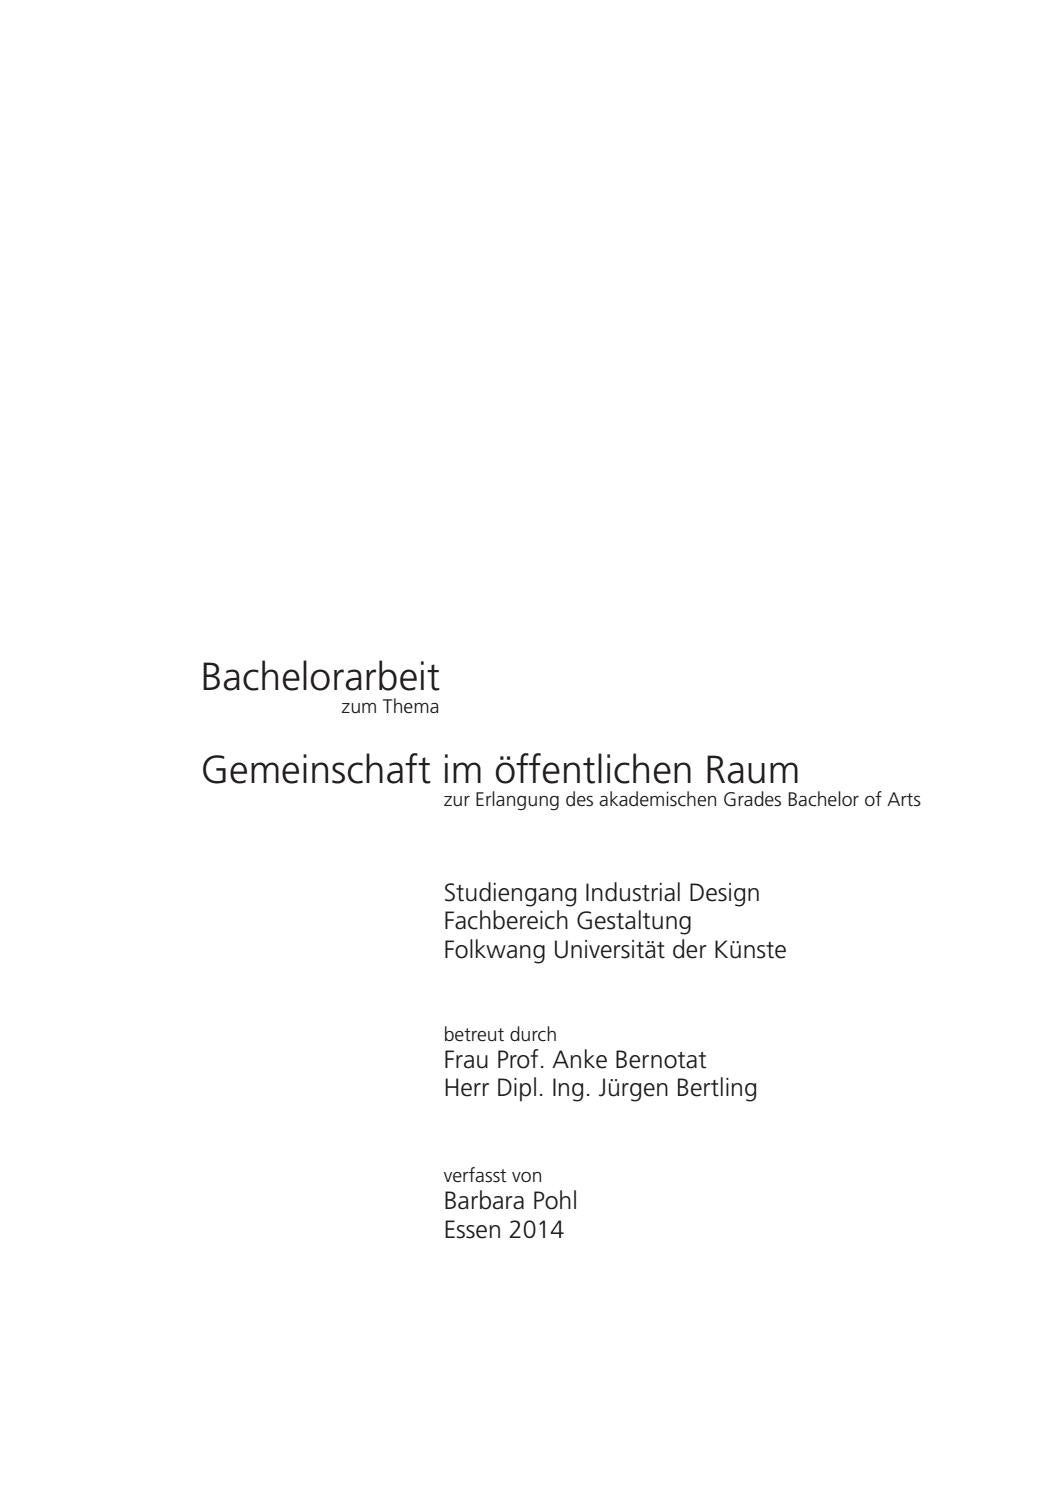 Alsenstraße Wohnzimmer Bochum Bachelor Thesis Barbara Pohl By Barbara Pohl Issuu